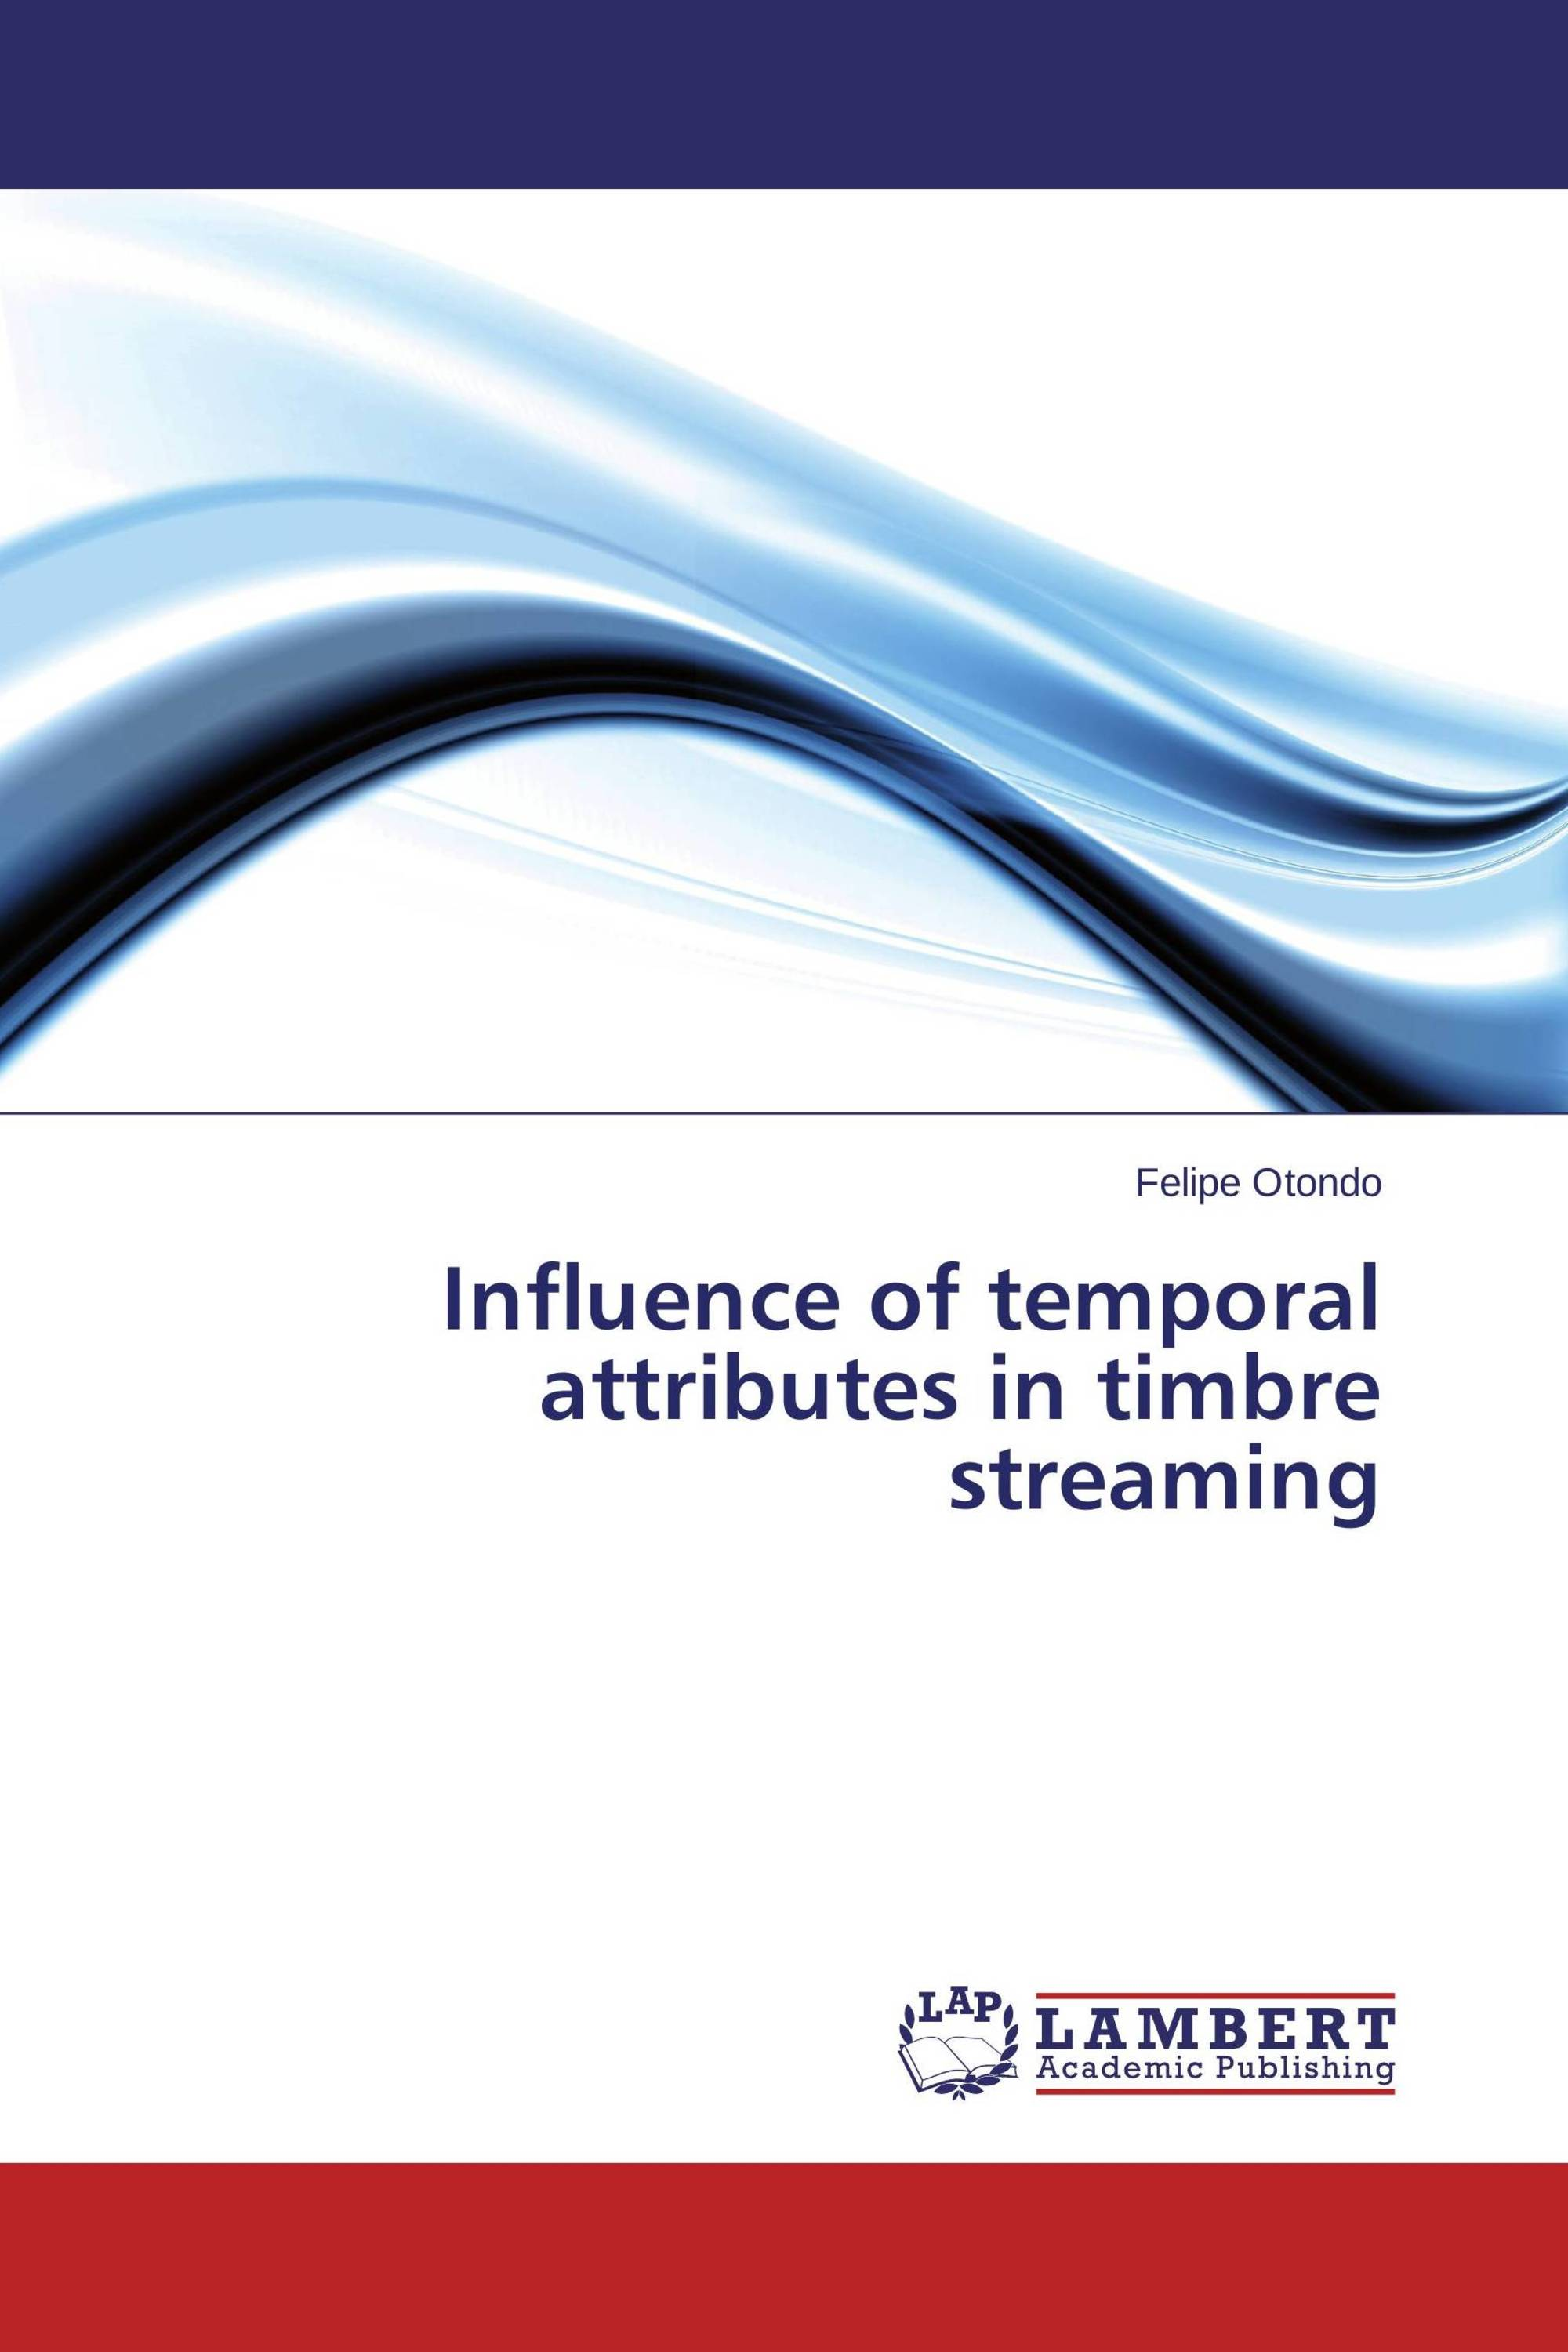 Influence of temporal attributes in timbre streaming